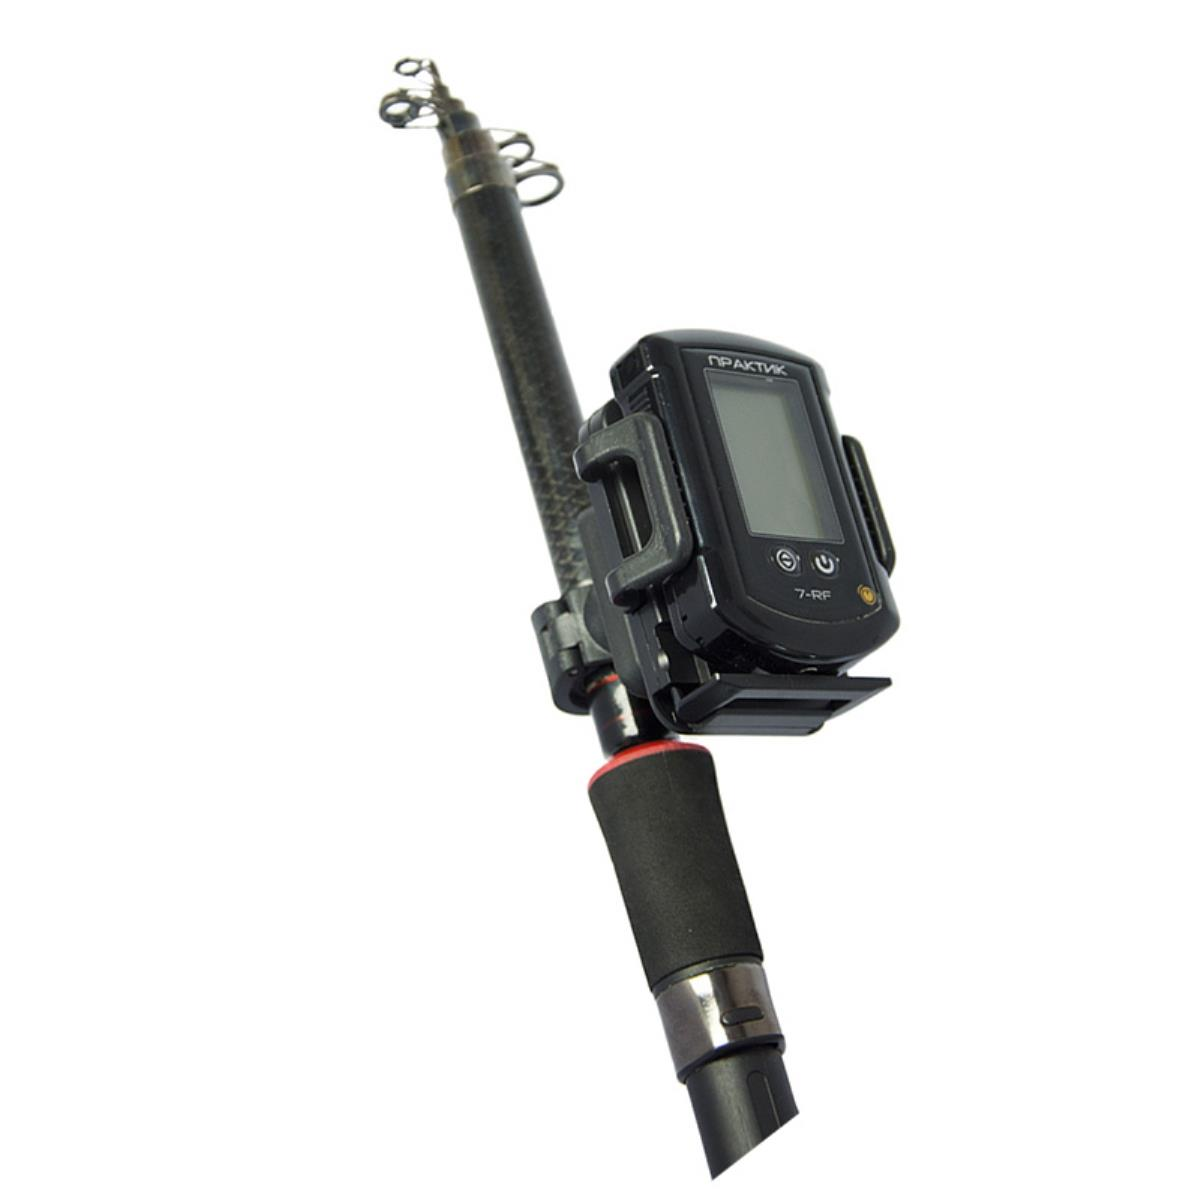 Clip On Fishing Rod Practices